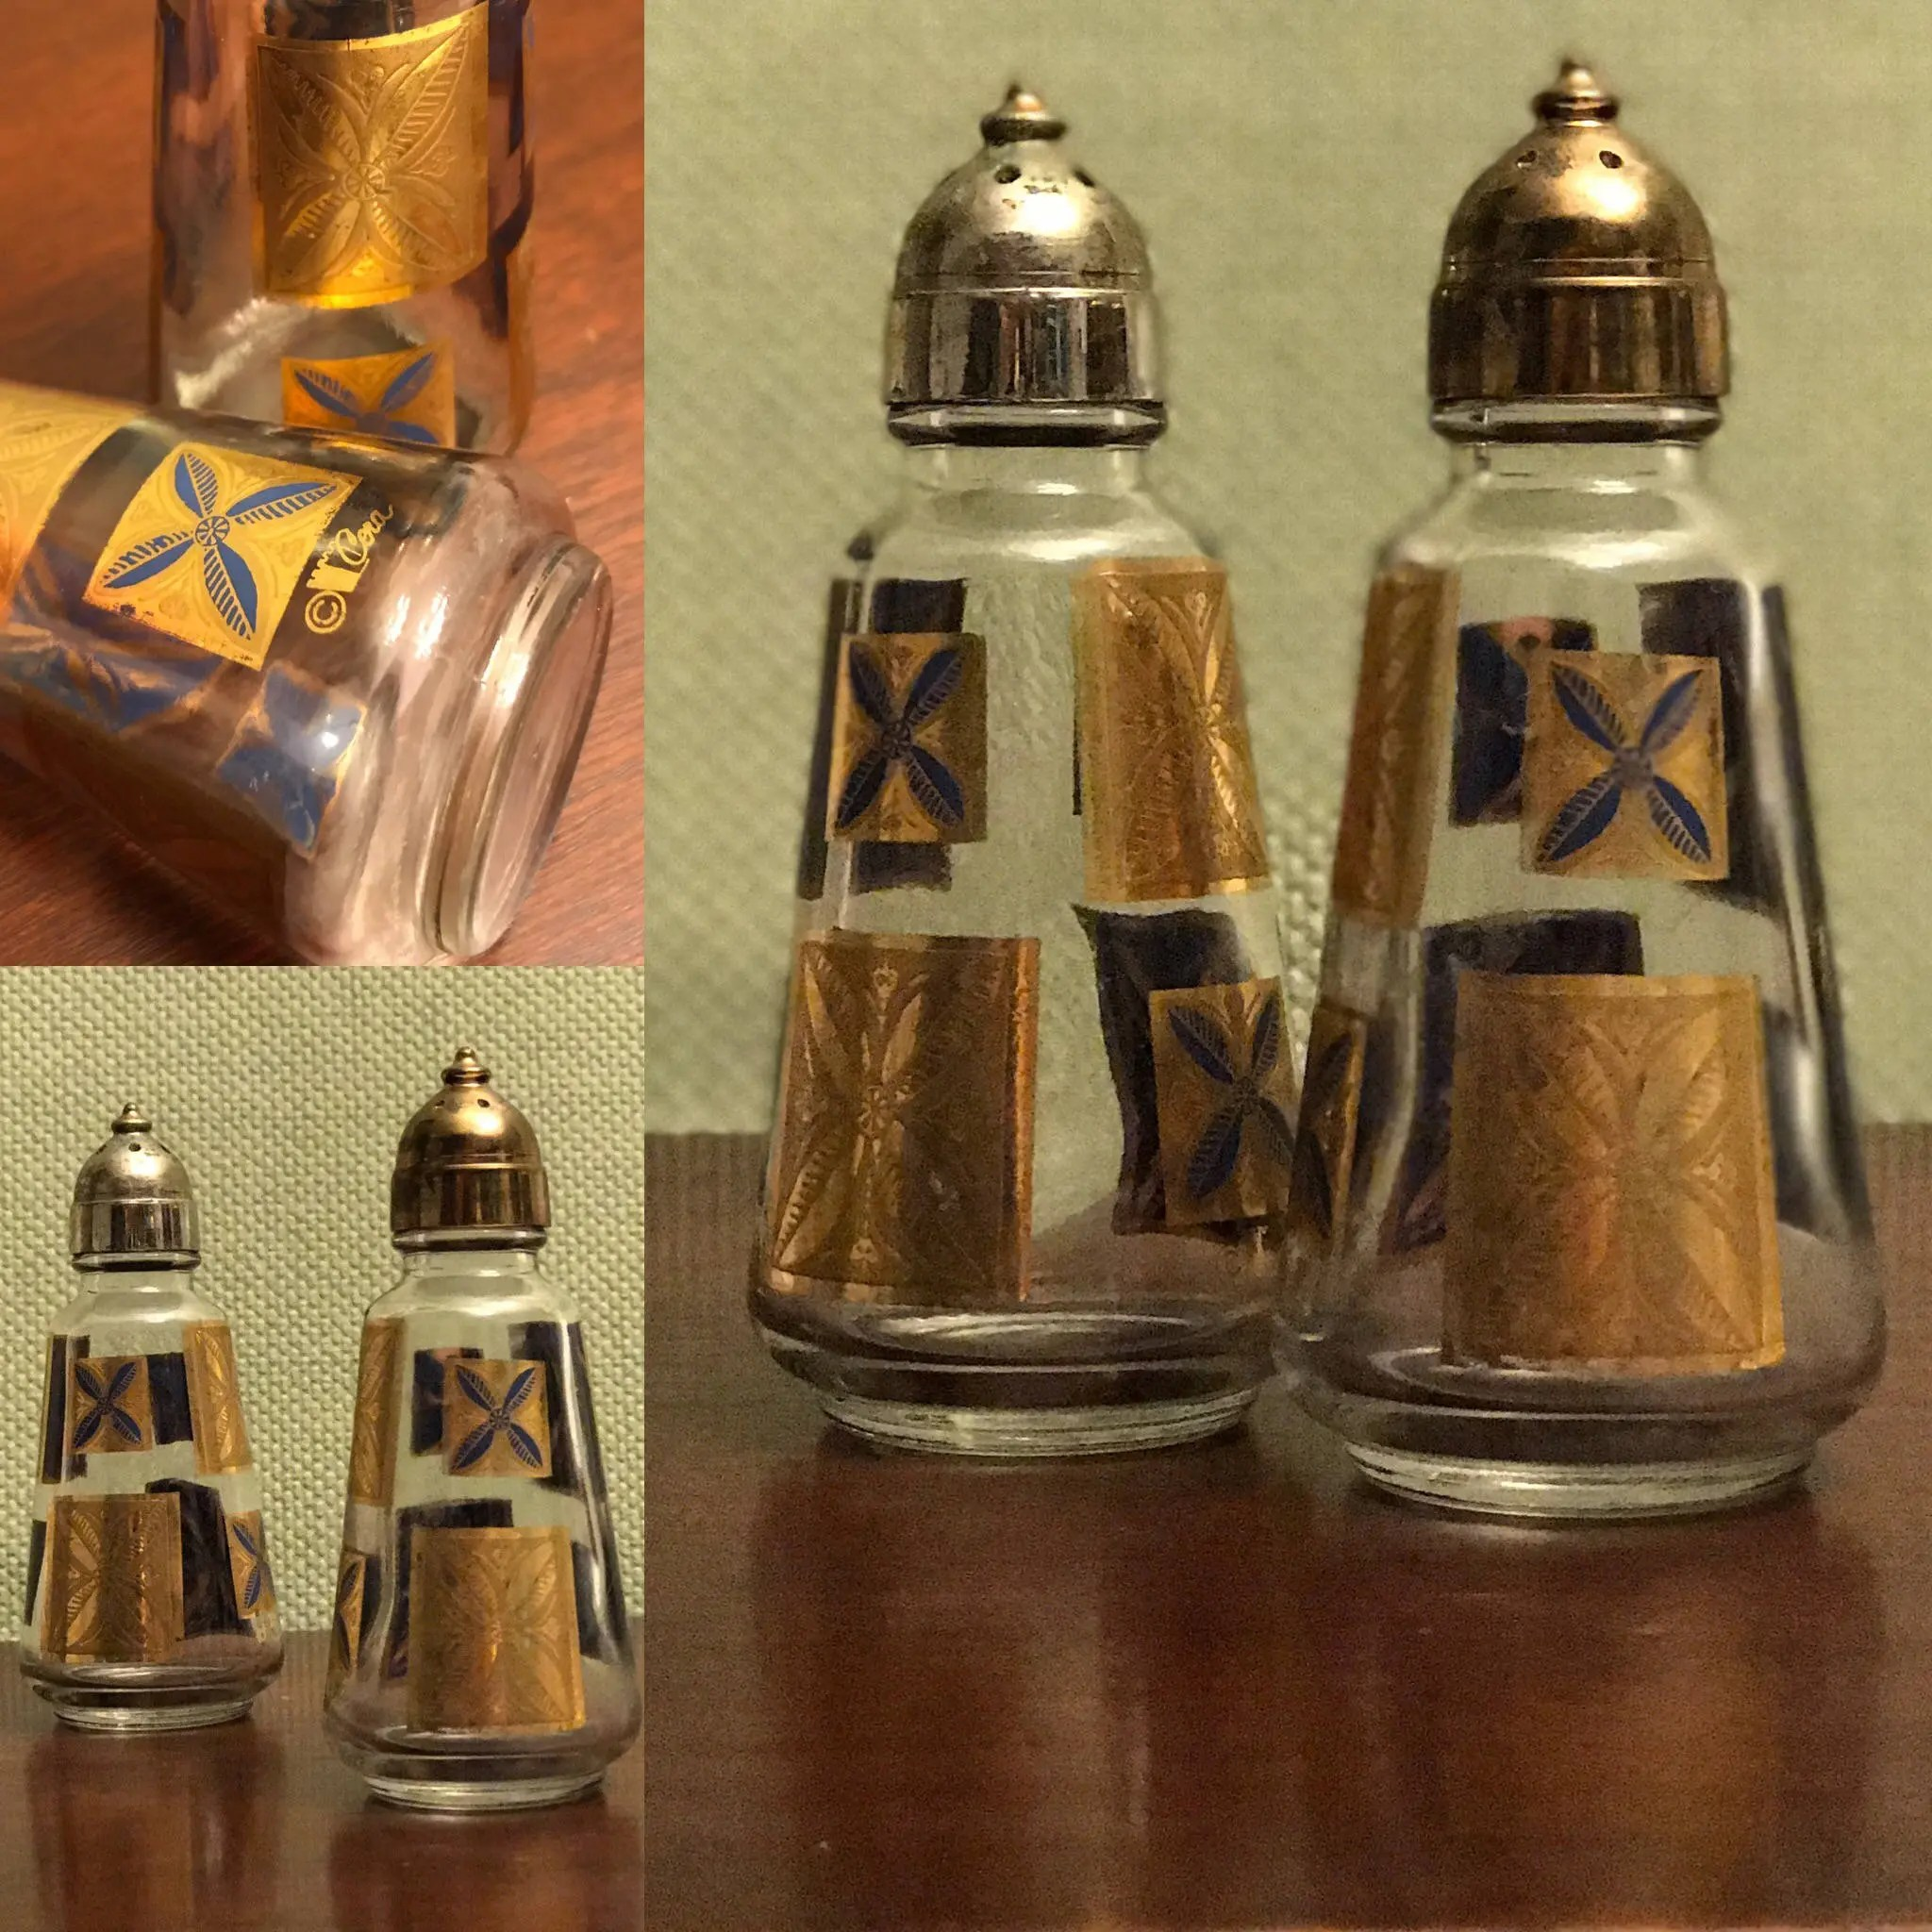 Modern Salt Pepper Shakers Mid Century Modern Cera Salt Pepper Shakers Rare Cera Salt Pepper